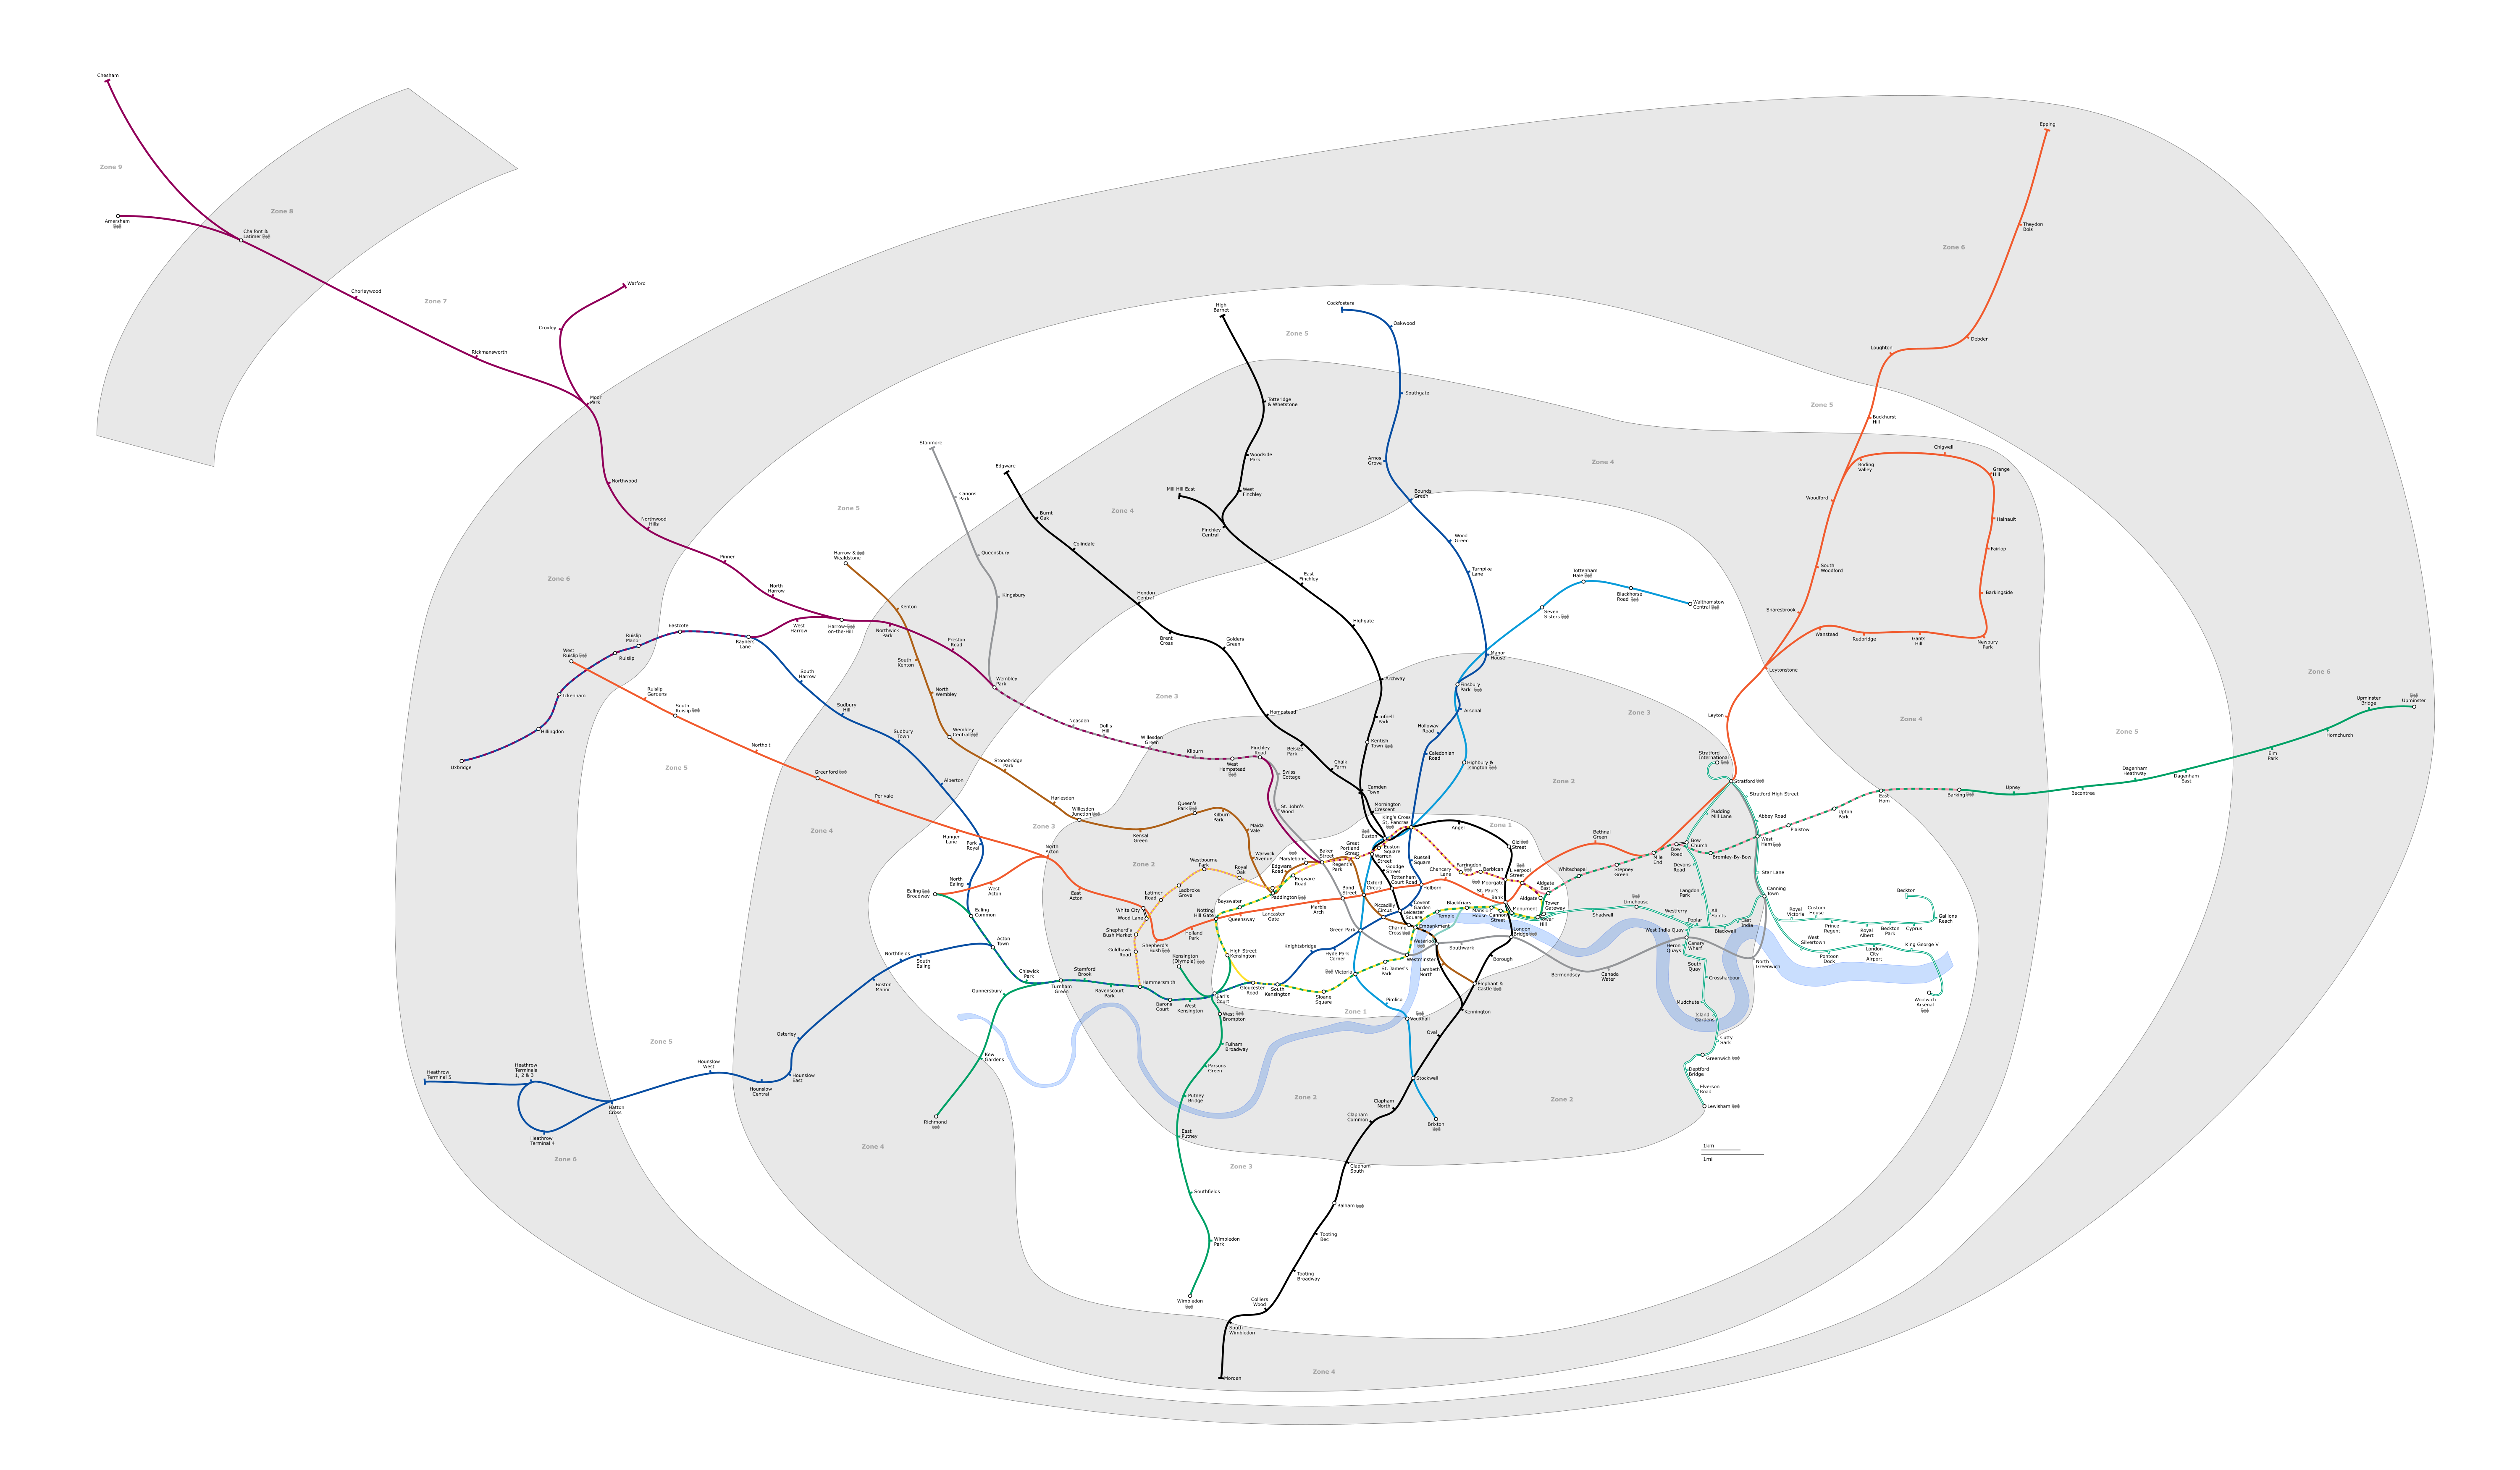 London_Underground_full_map.png